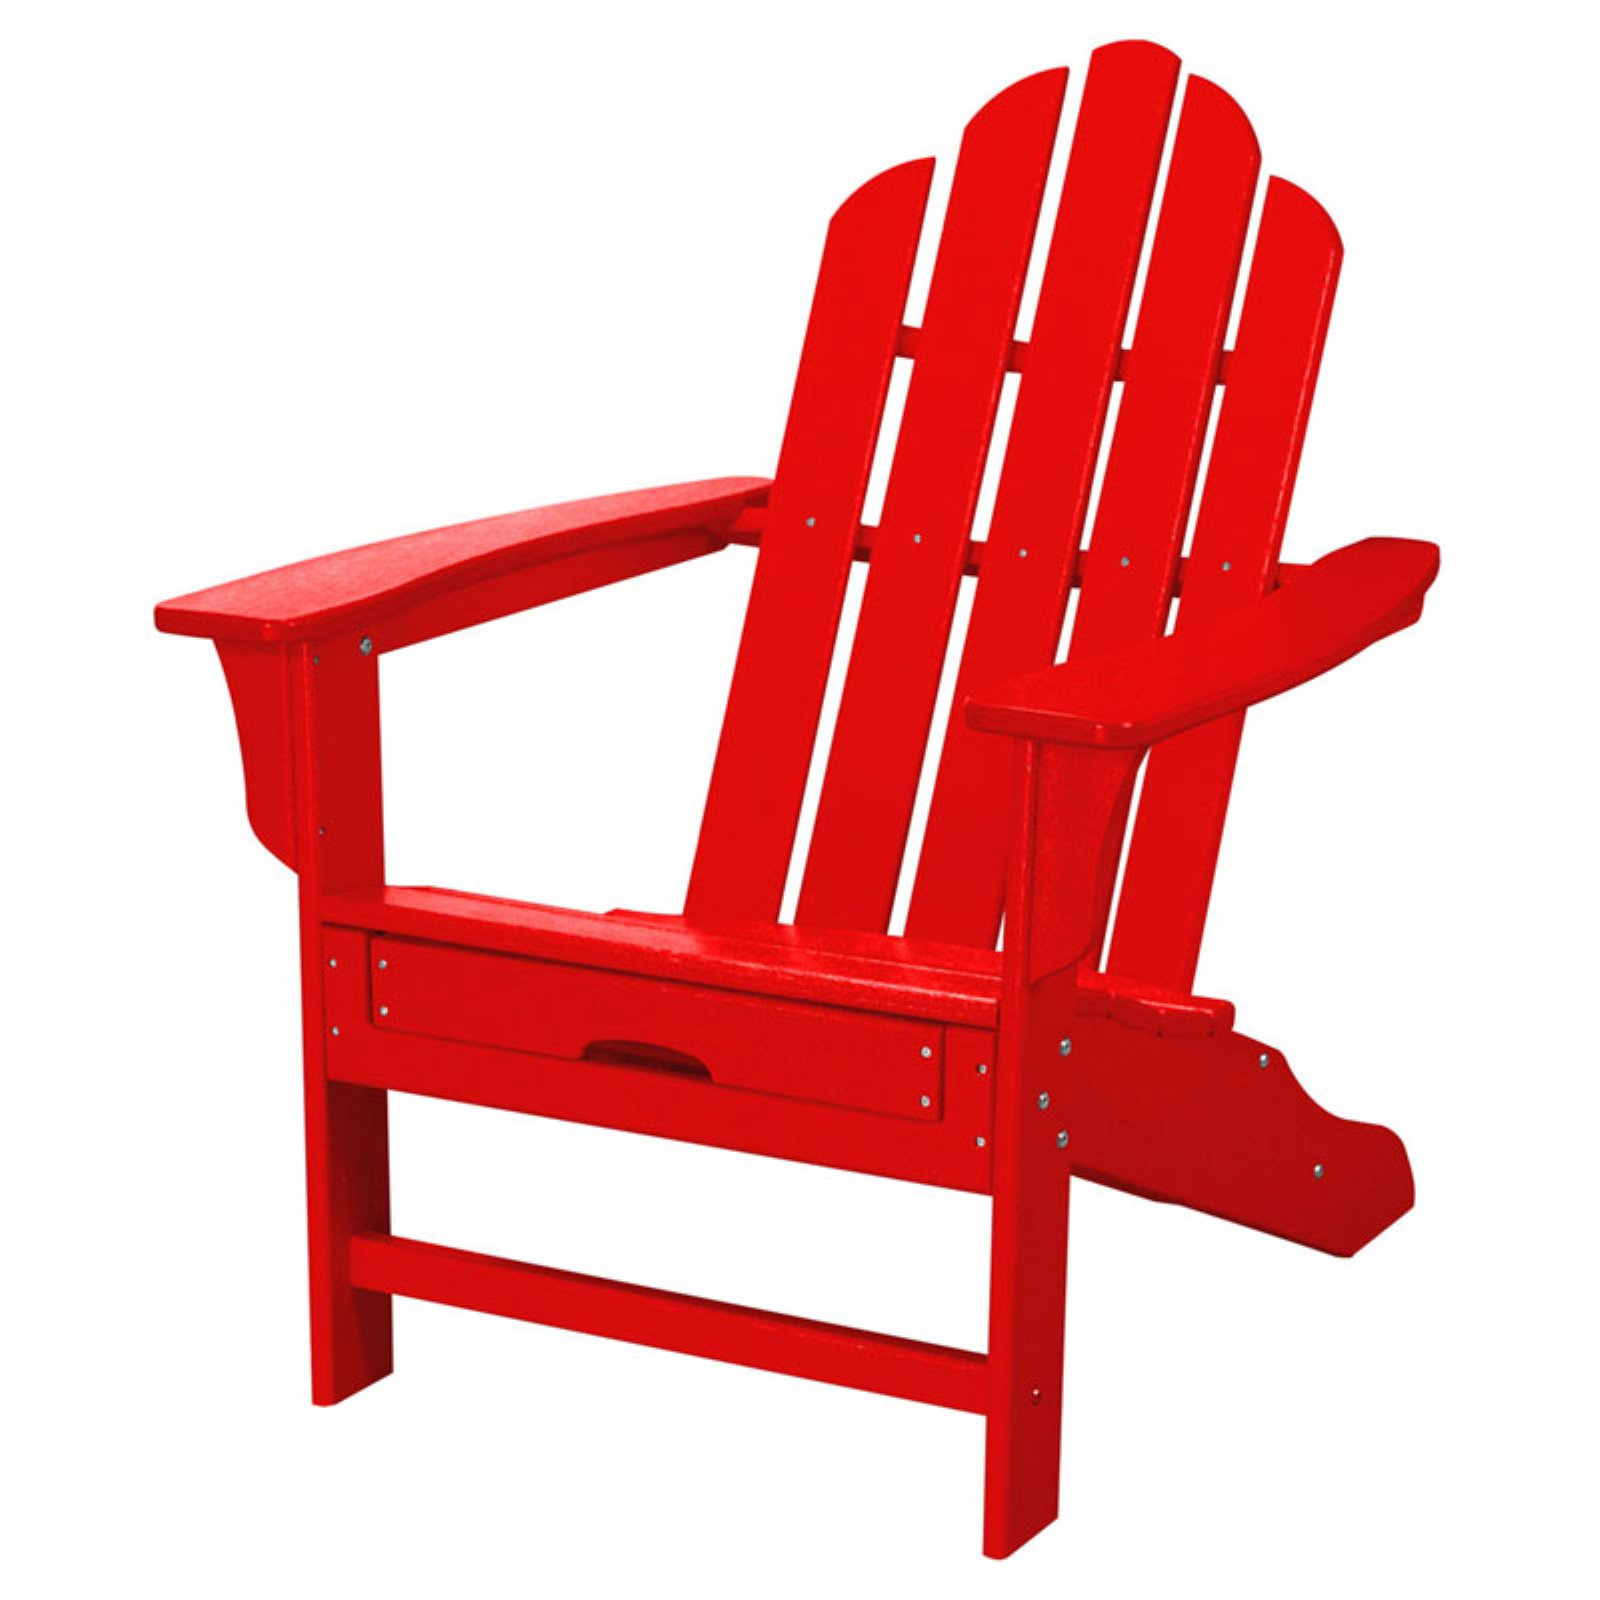 Hanover Outdoor Furniture All-Weather Contoured Adirondack Chair with Hideaway Ottoman